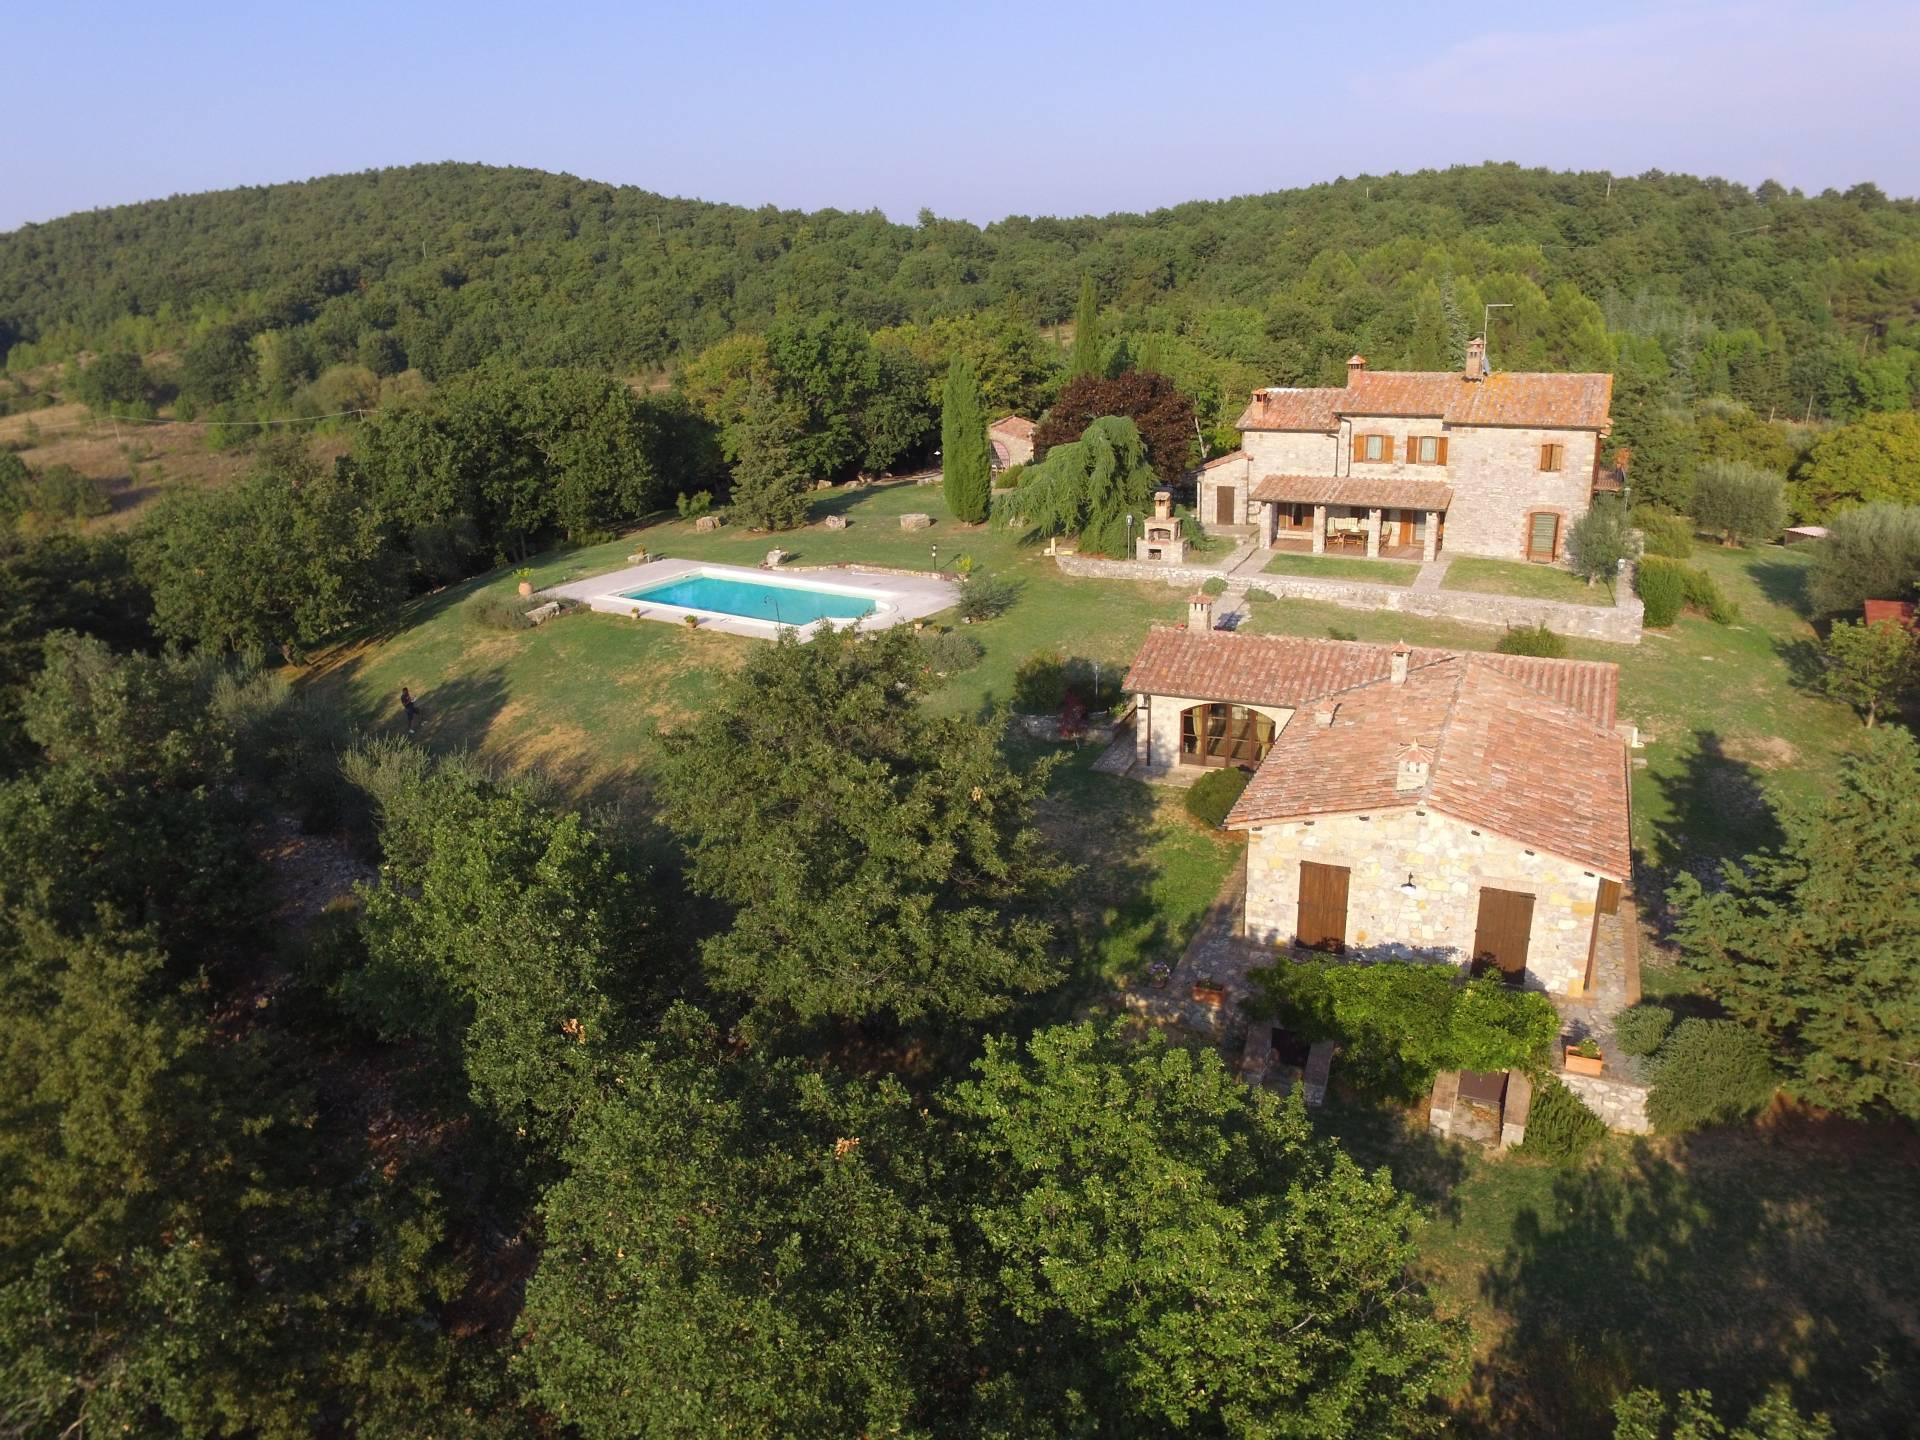 Wonderful property in the heart of Umbria - 5